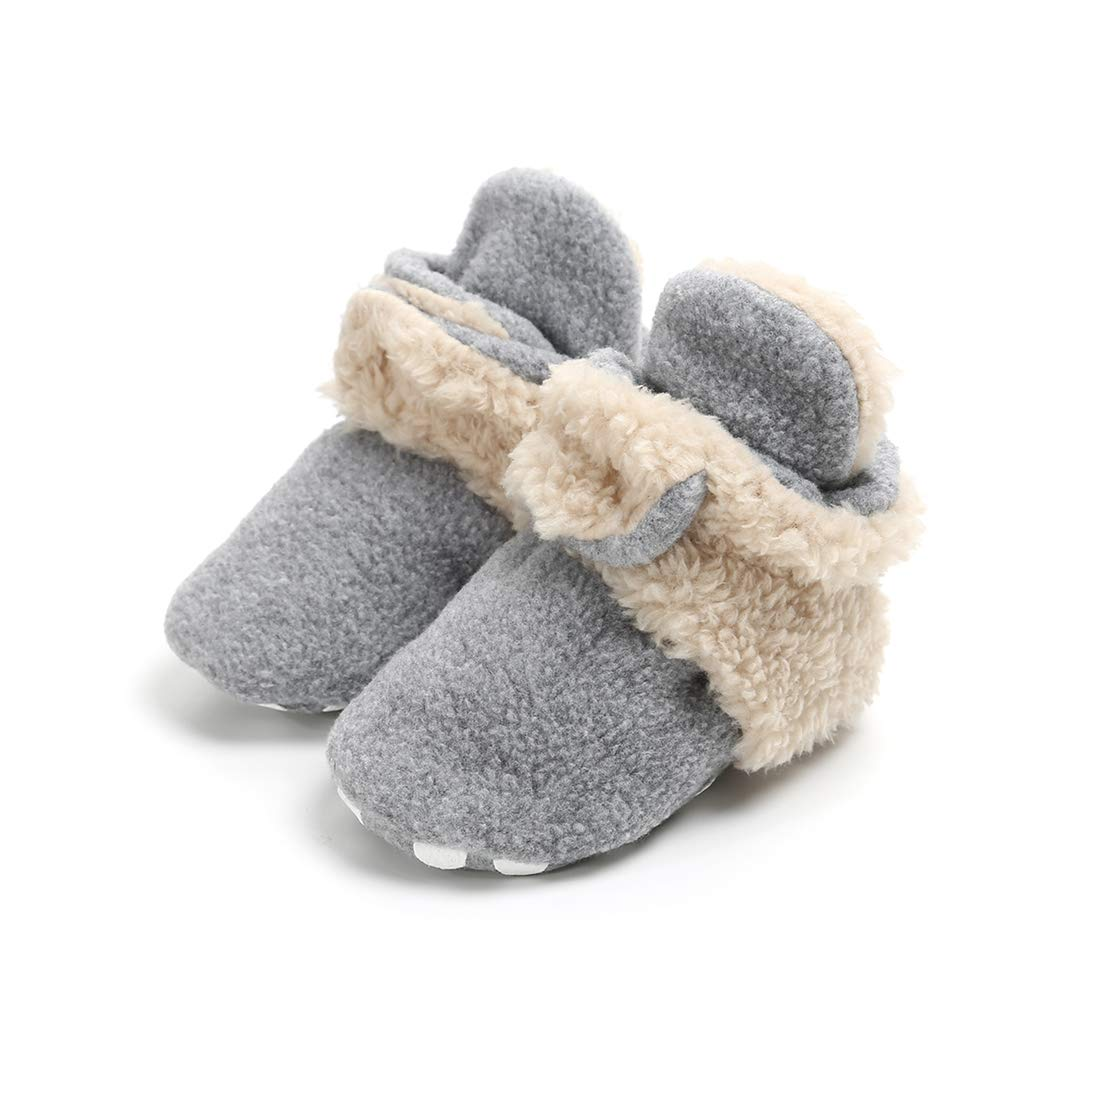 AUPUMI Unisex-Baby Newborn Cozie Fleece Booties with Non Skid Bottom Infant Winter Shoes